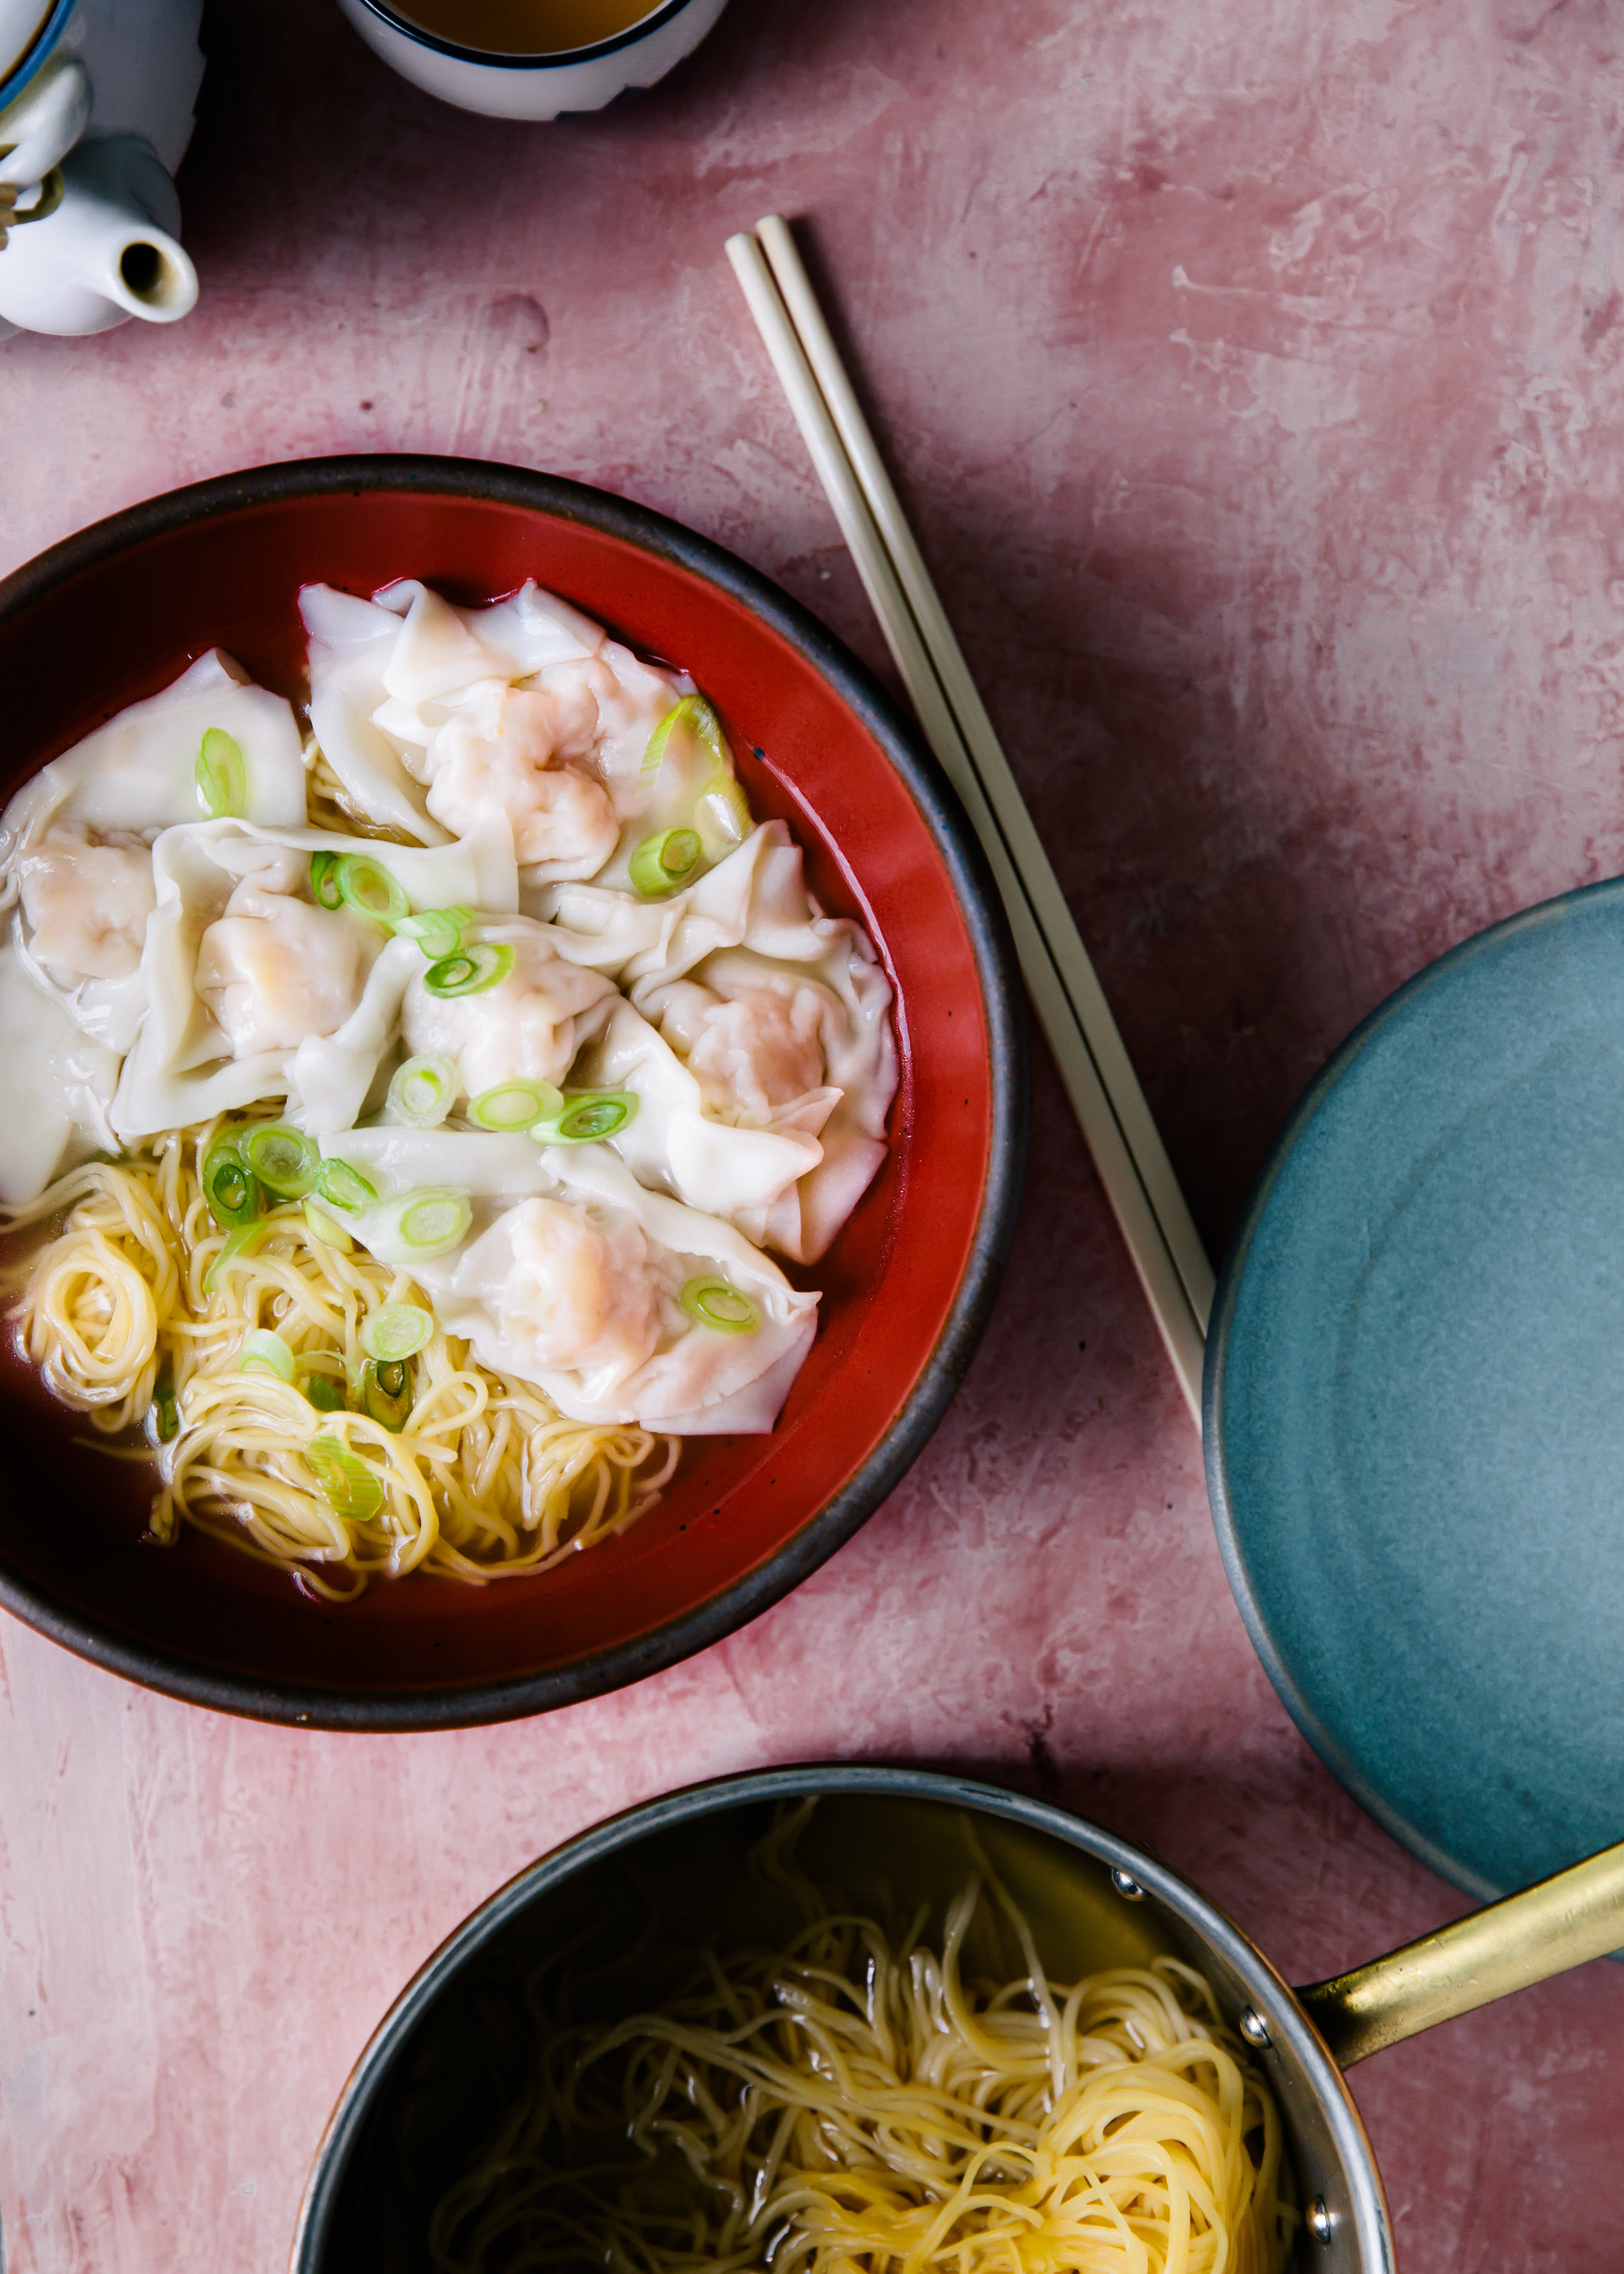 Film- In the Mood for Love, Food- Wonton Noodle Soup